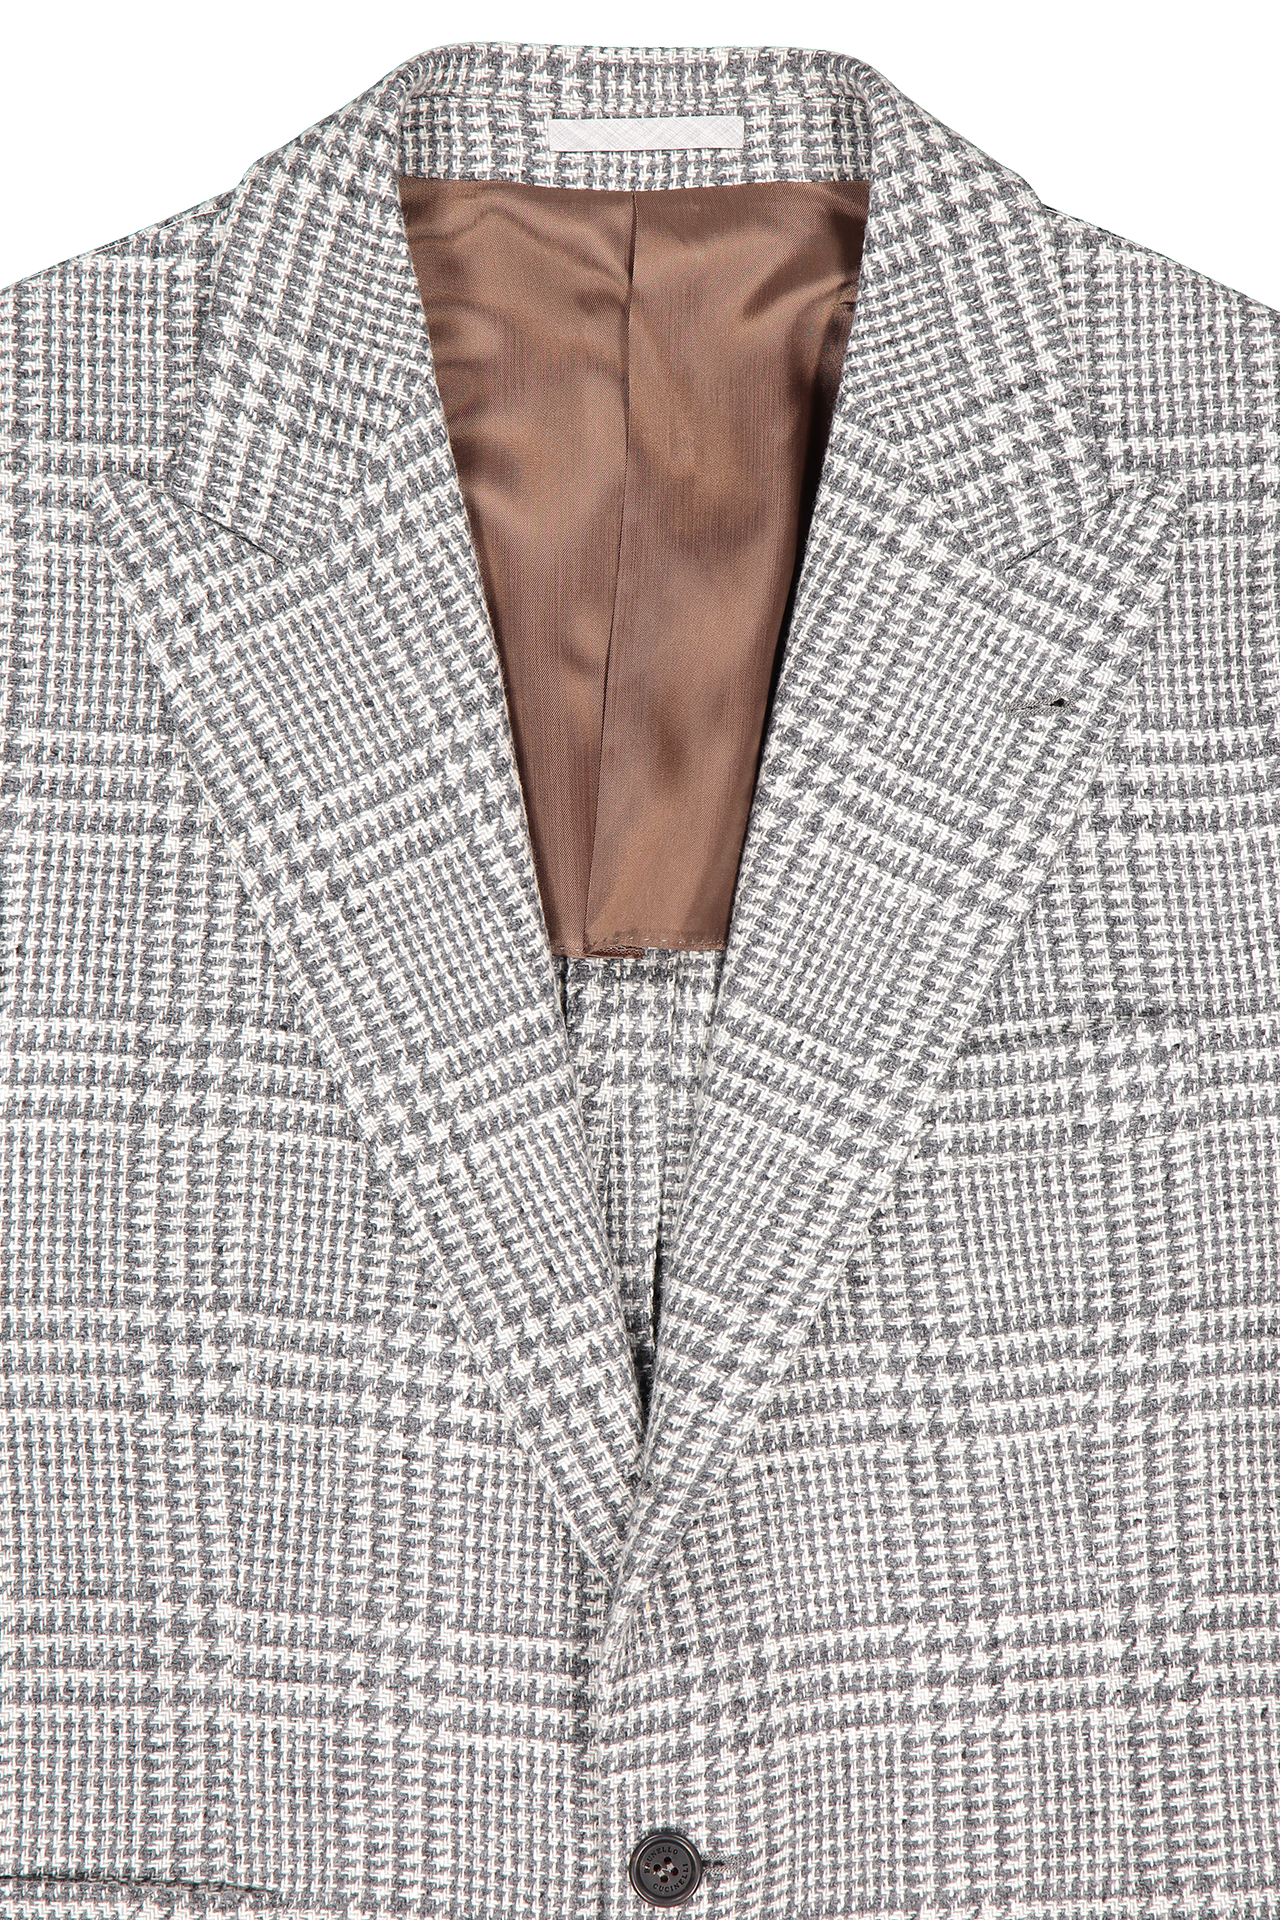 Front collar and lapel detail image of Brunello Cucinelli Men's Light Grey Plaid Sport Coat